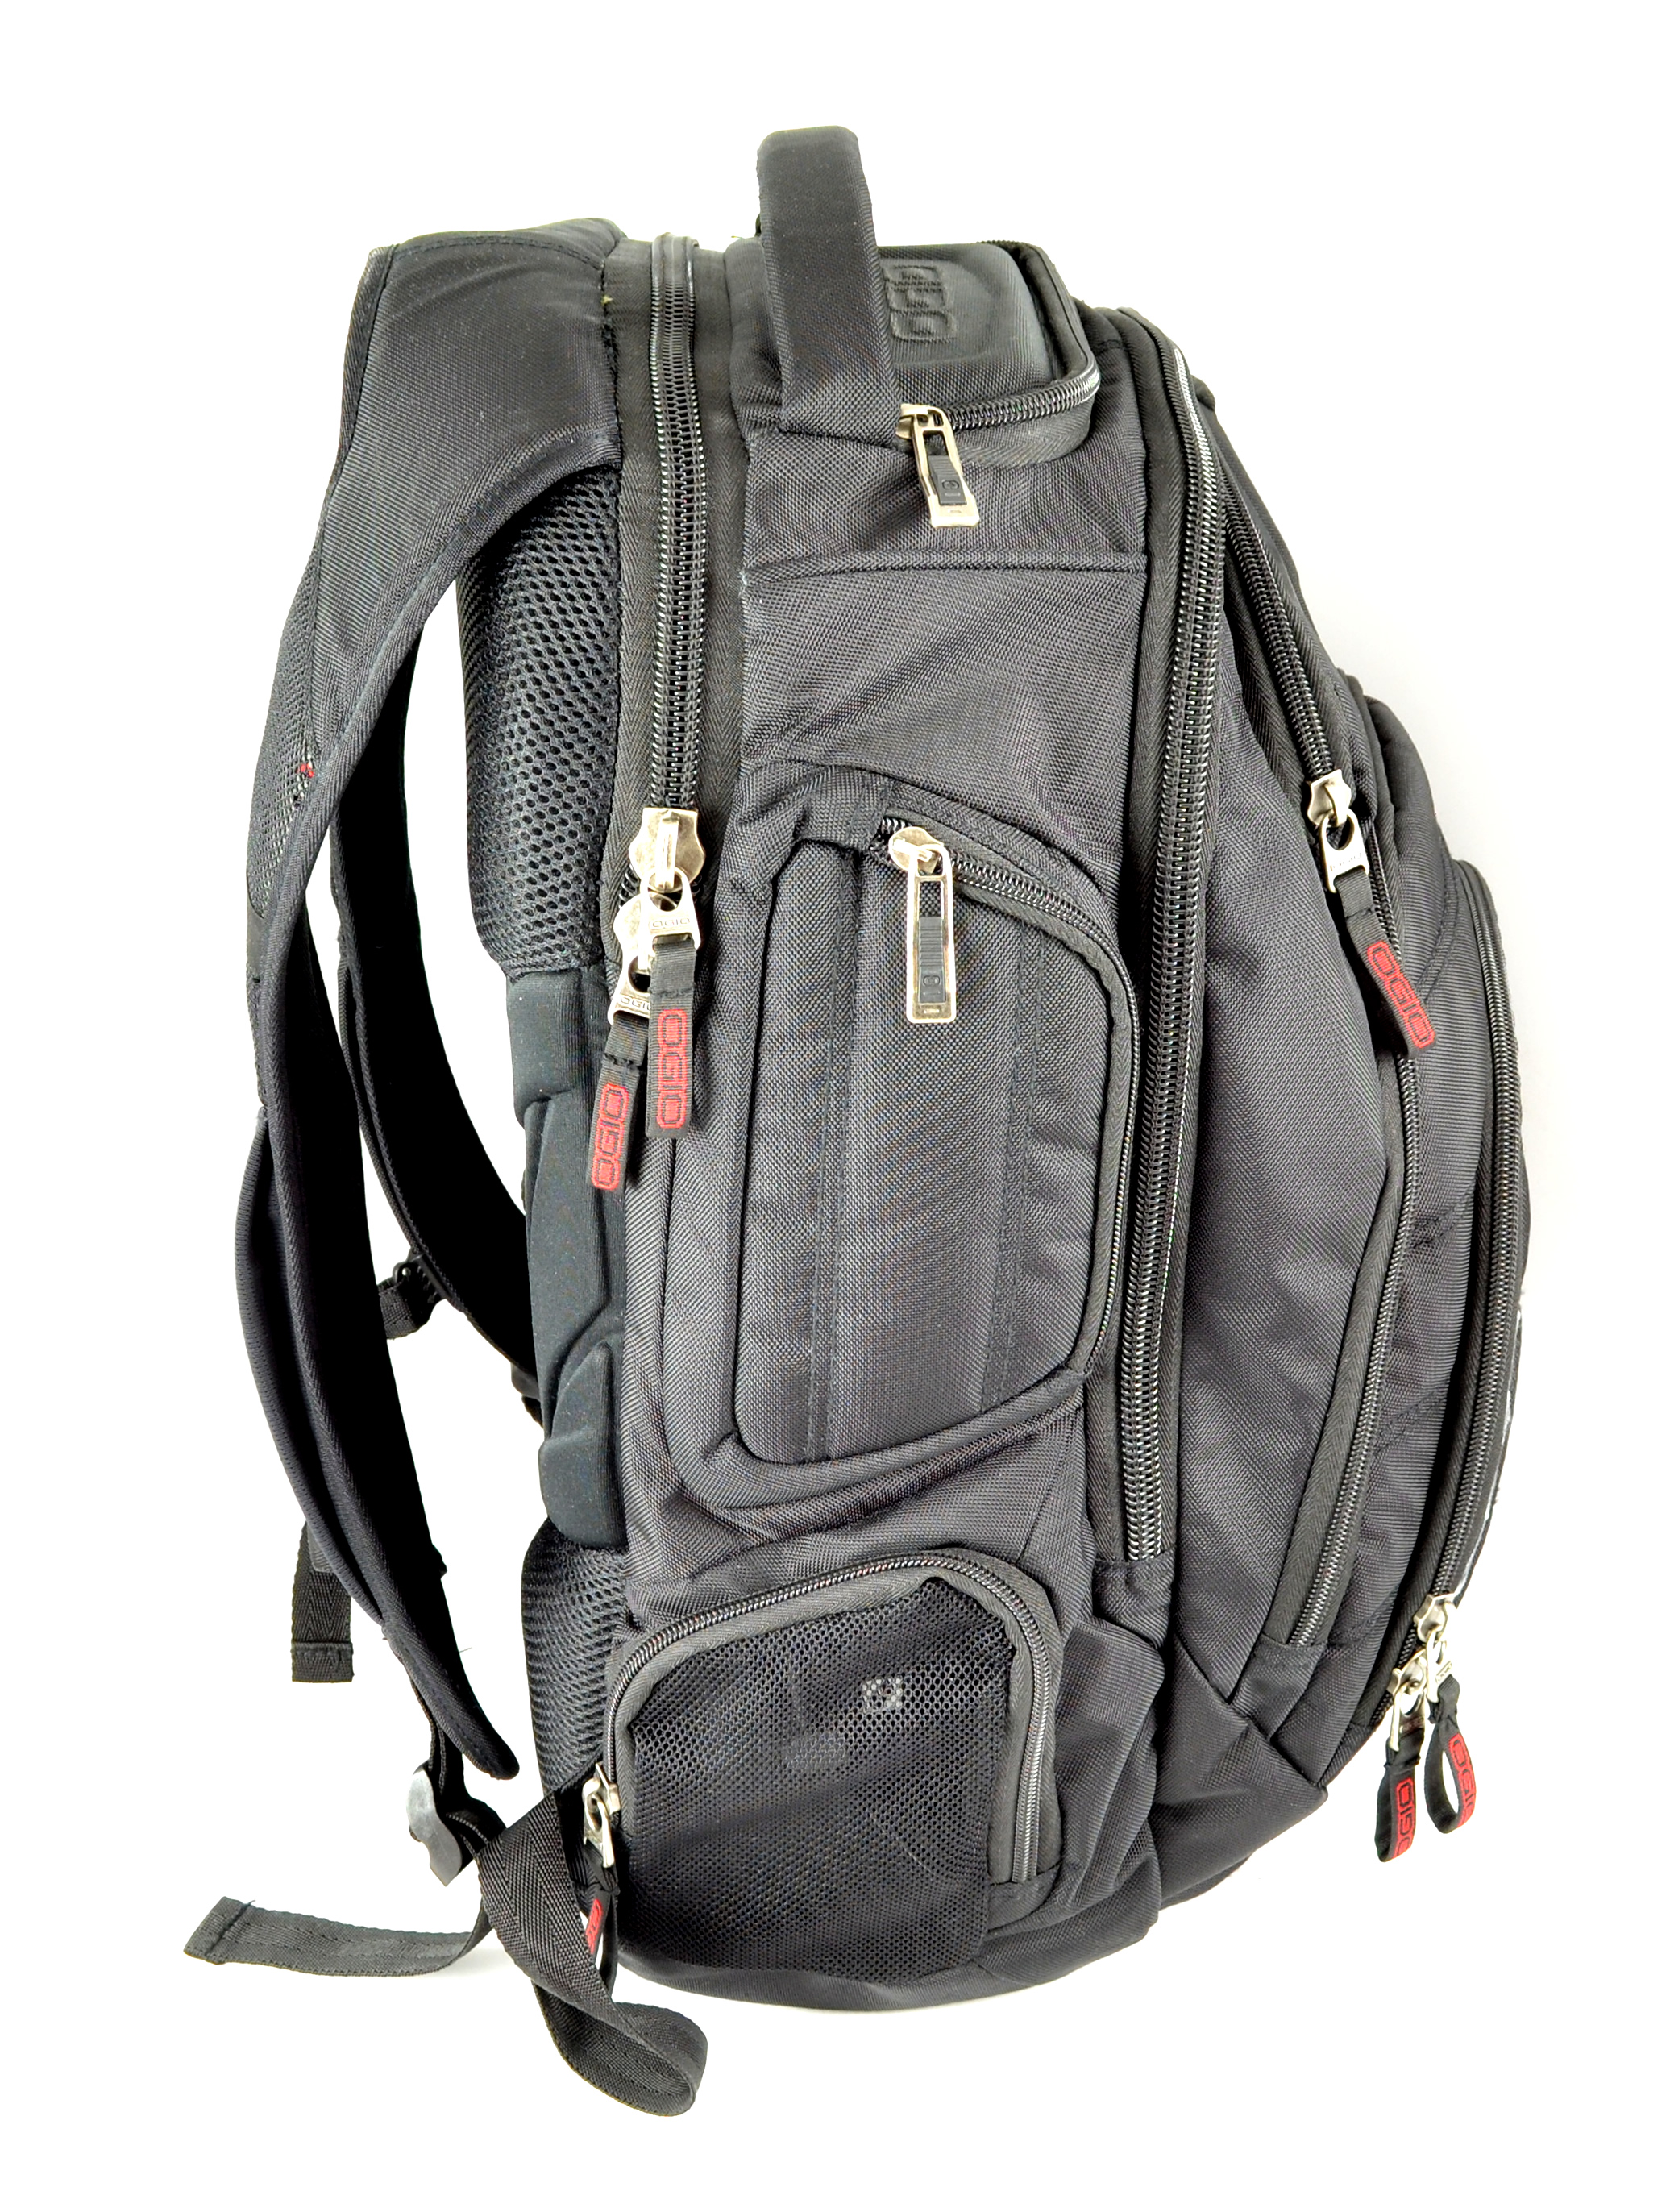 Ogio Renegade Rss 17 Laptop Backpack axzXIM3Z